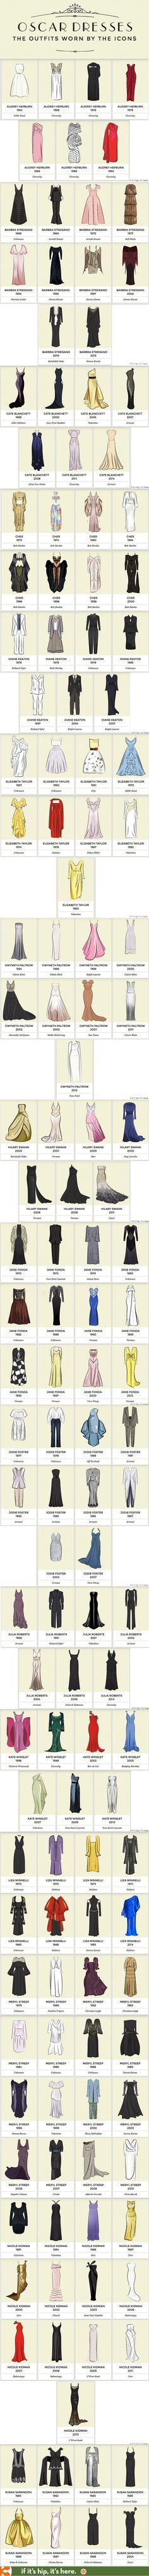 Iconic Oscar Dresses, grouped by Actress.   http://www.ifitshipitshere.com/iconic-oscar-dresses/